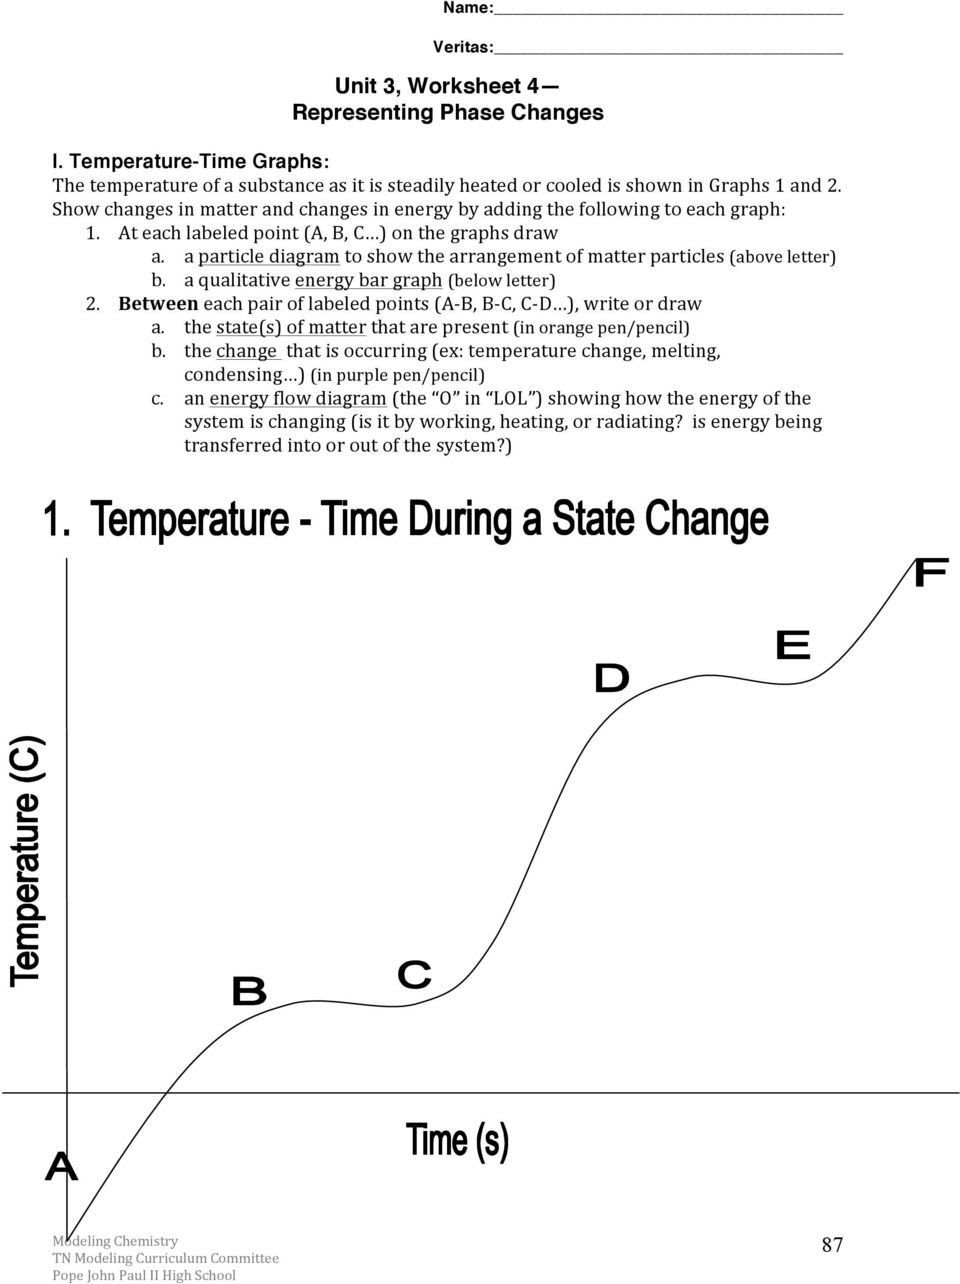 Phase Change Diagram Worksheets Chemistry Unit 3 Reading Assignment Energy And Kinetic In 2020 Worksheets Counting Atoms Worksheet Answers